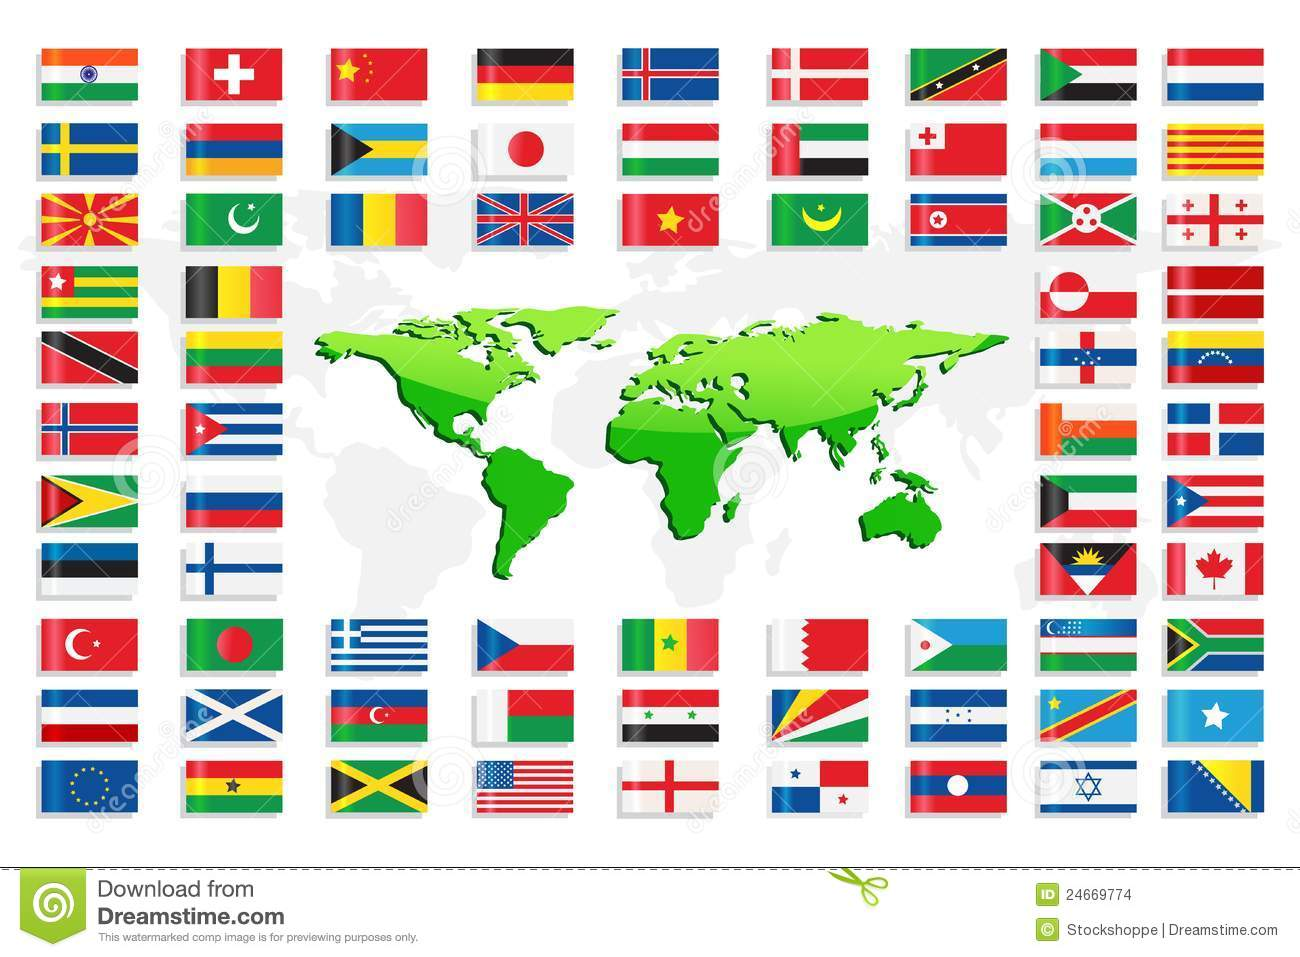 Foreign Country Flags on World Map With Country Flags